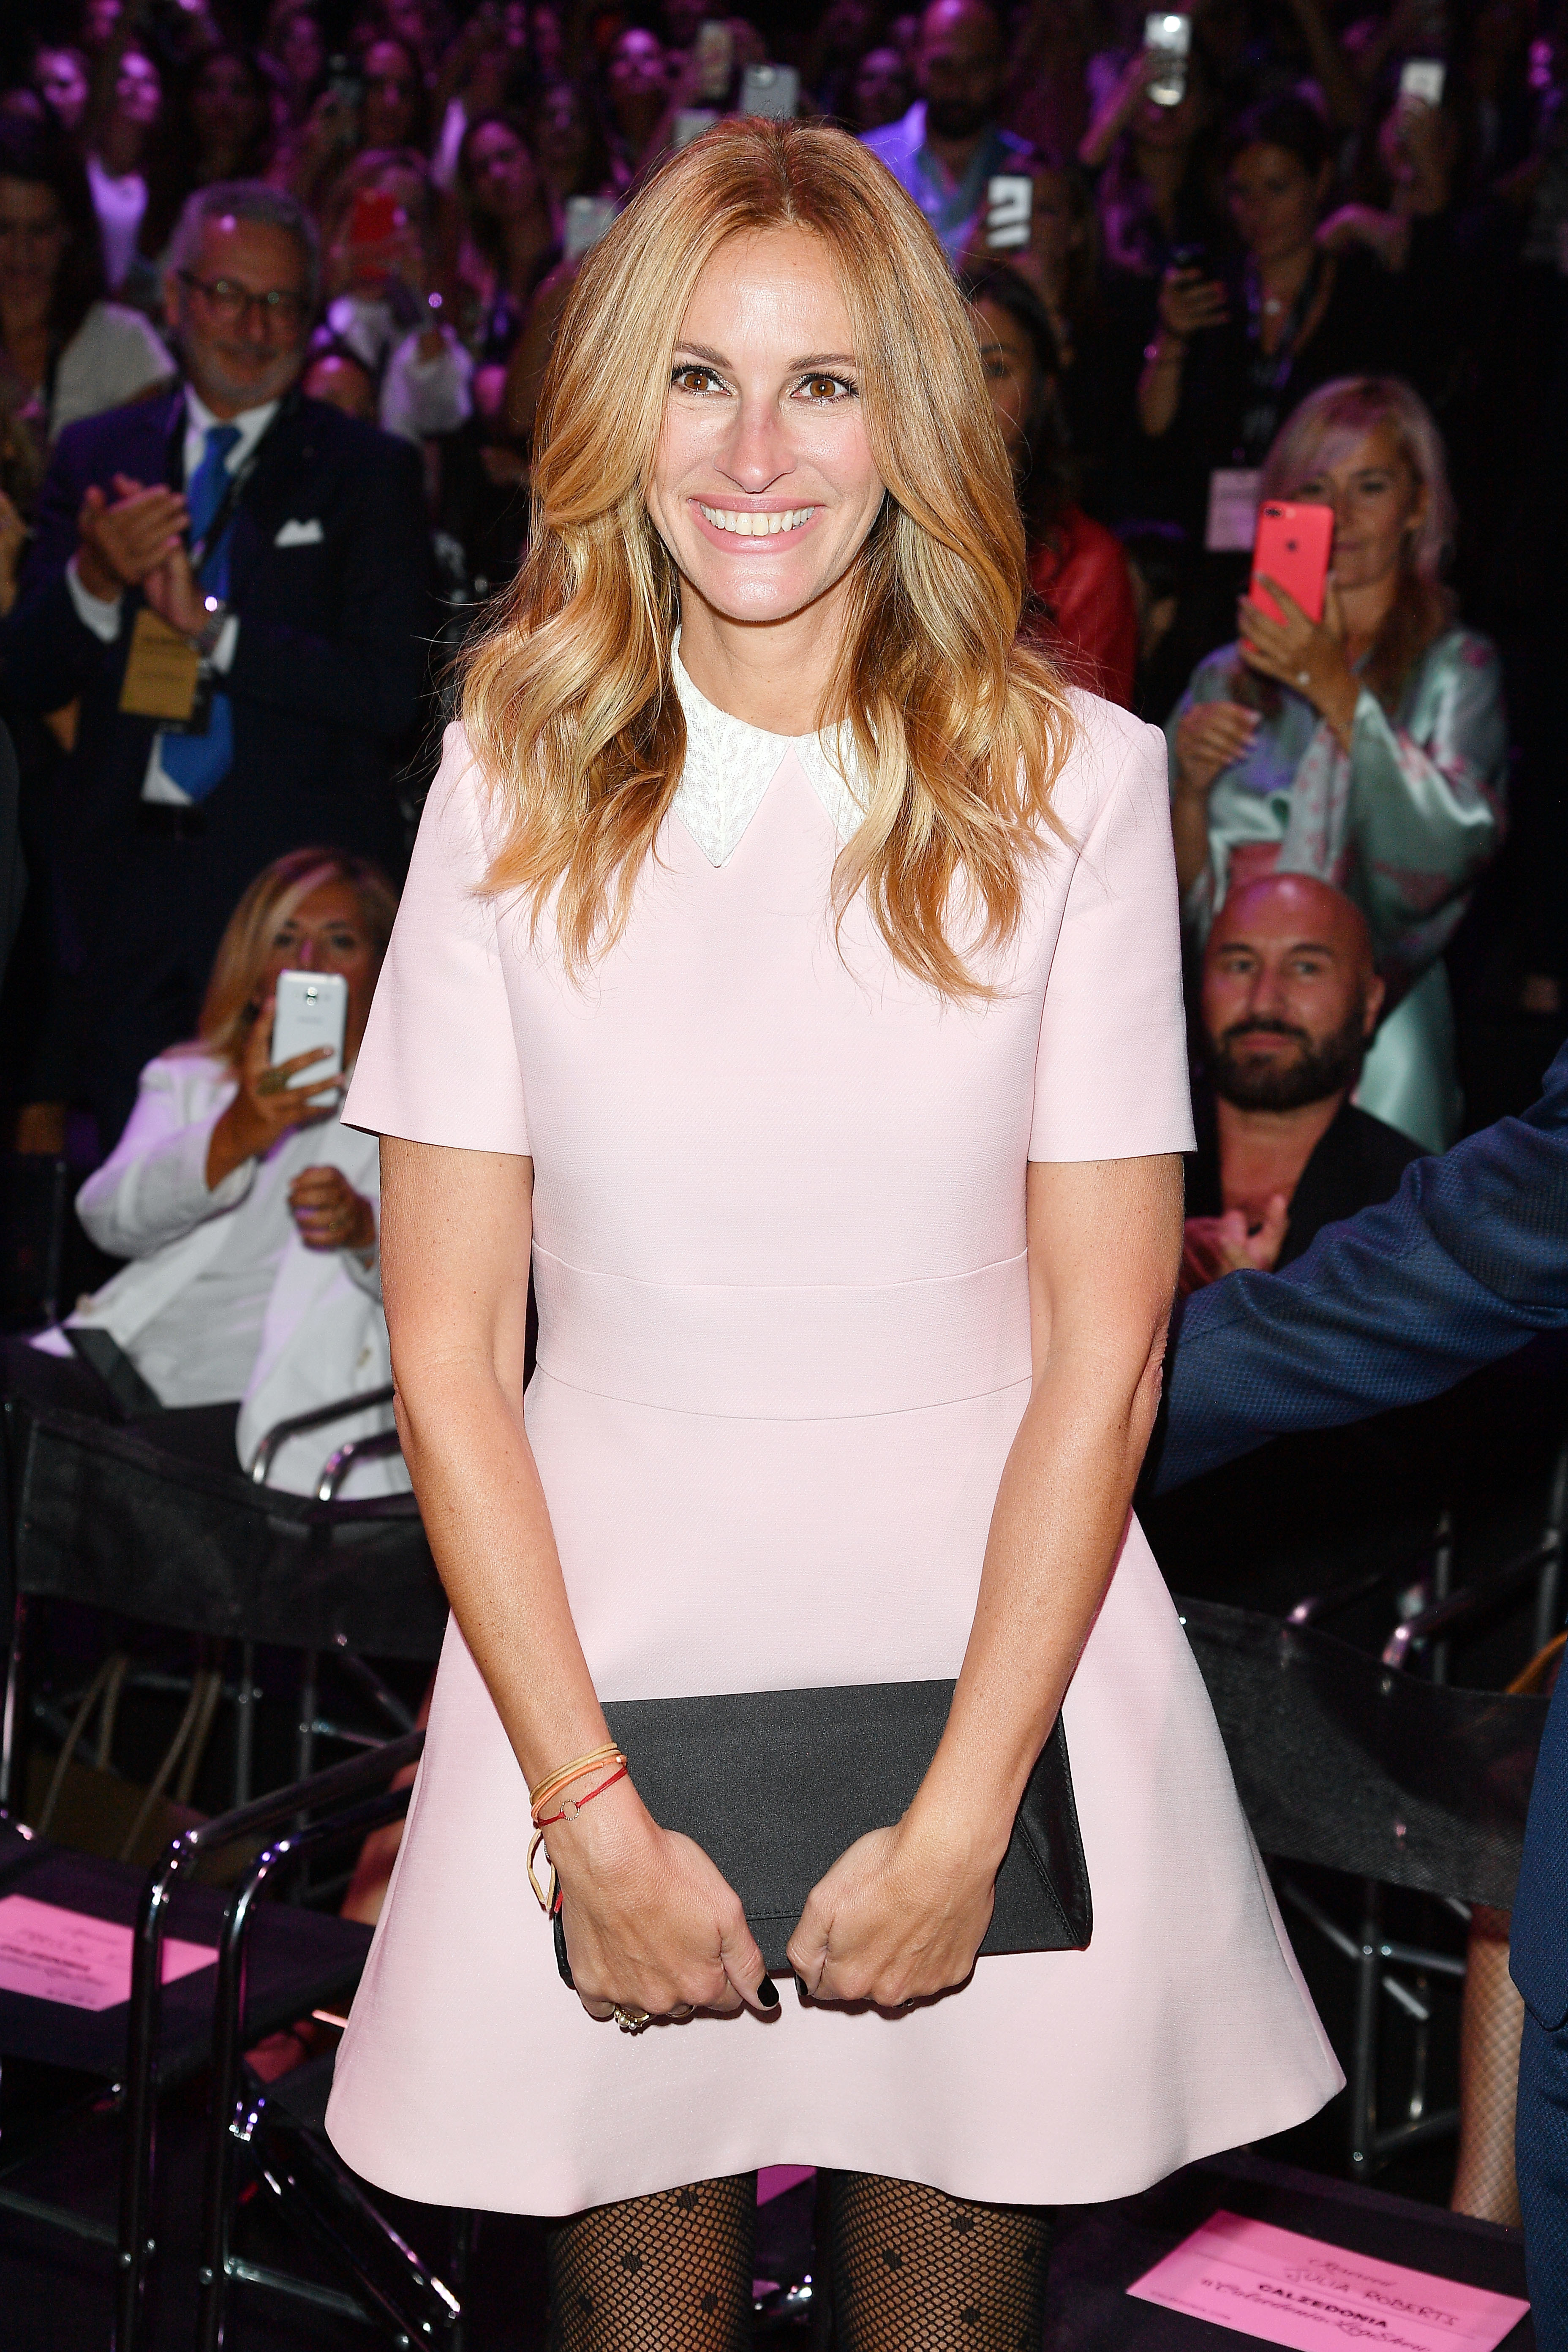 Julia Roberts attends Calzedonia Legs Show  in Verona, Italy, on Sept. 5, 2017.